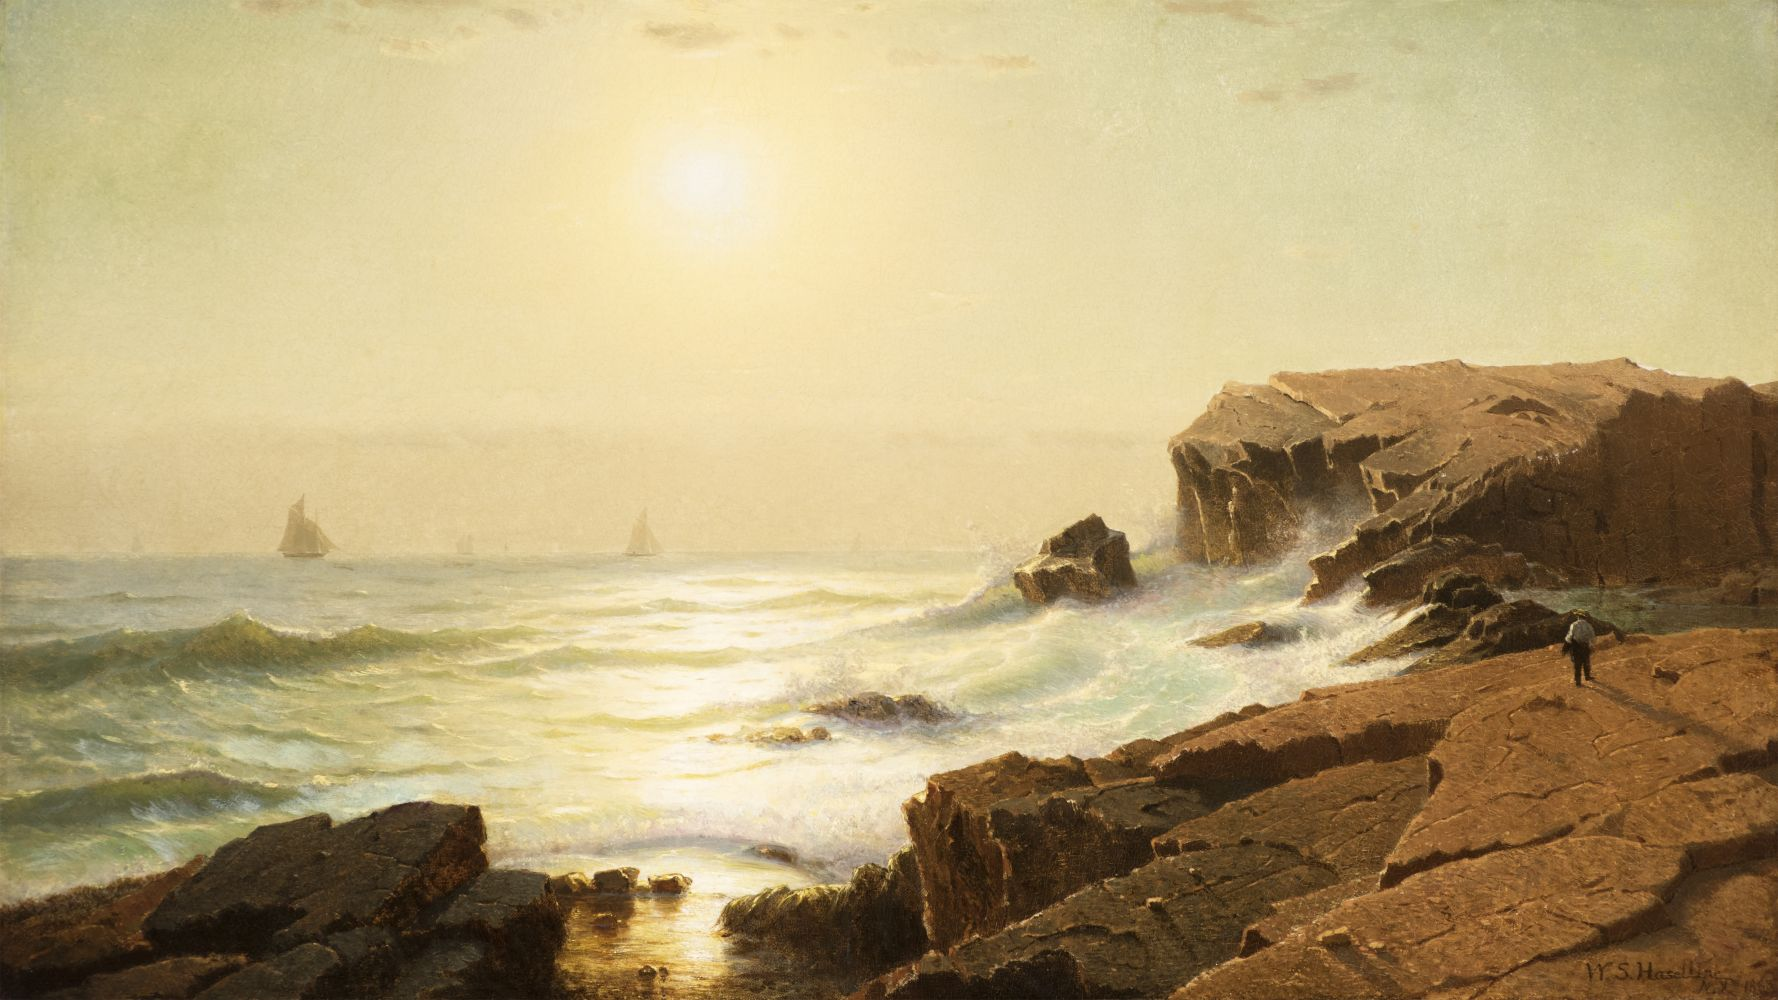 William Stanley Haseltine (1835–1900), Sunrise at Narragansett, Rhode Island, 1863, oil on canvas, 18 1/4 x 31 3/4 in., signed and dated lower right: W.S. Haseltine, N.Y. 1863